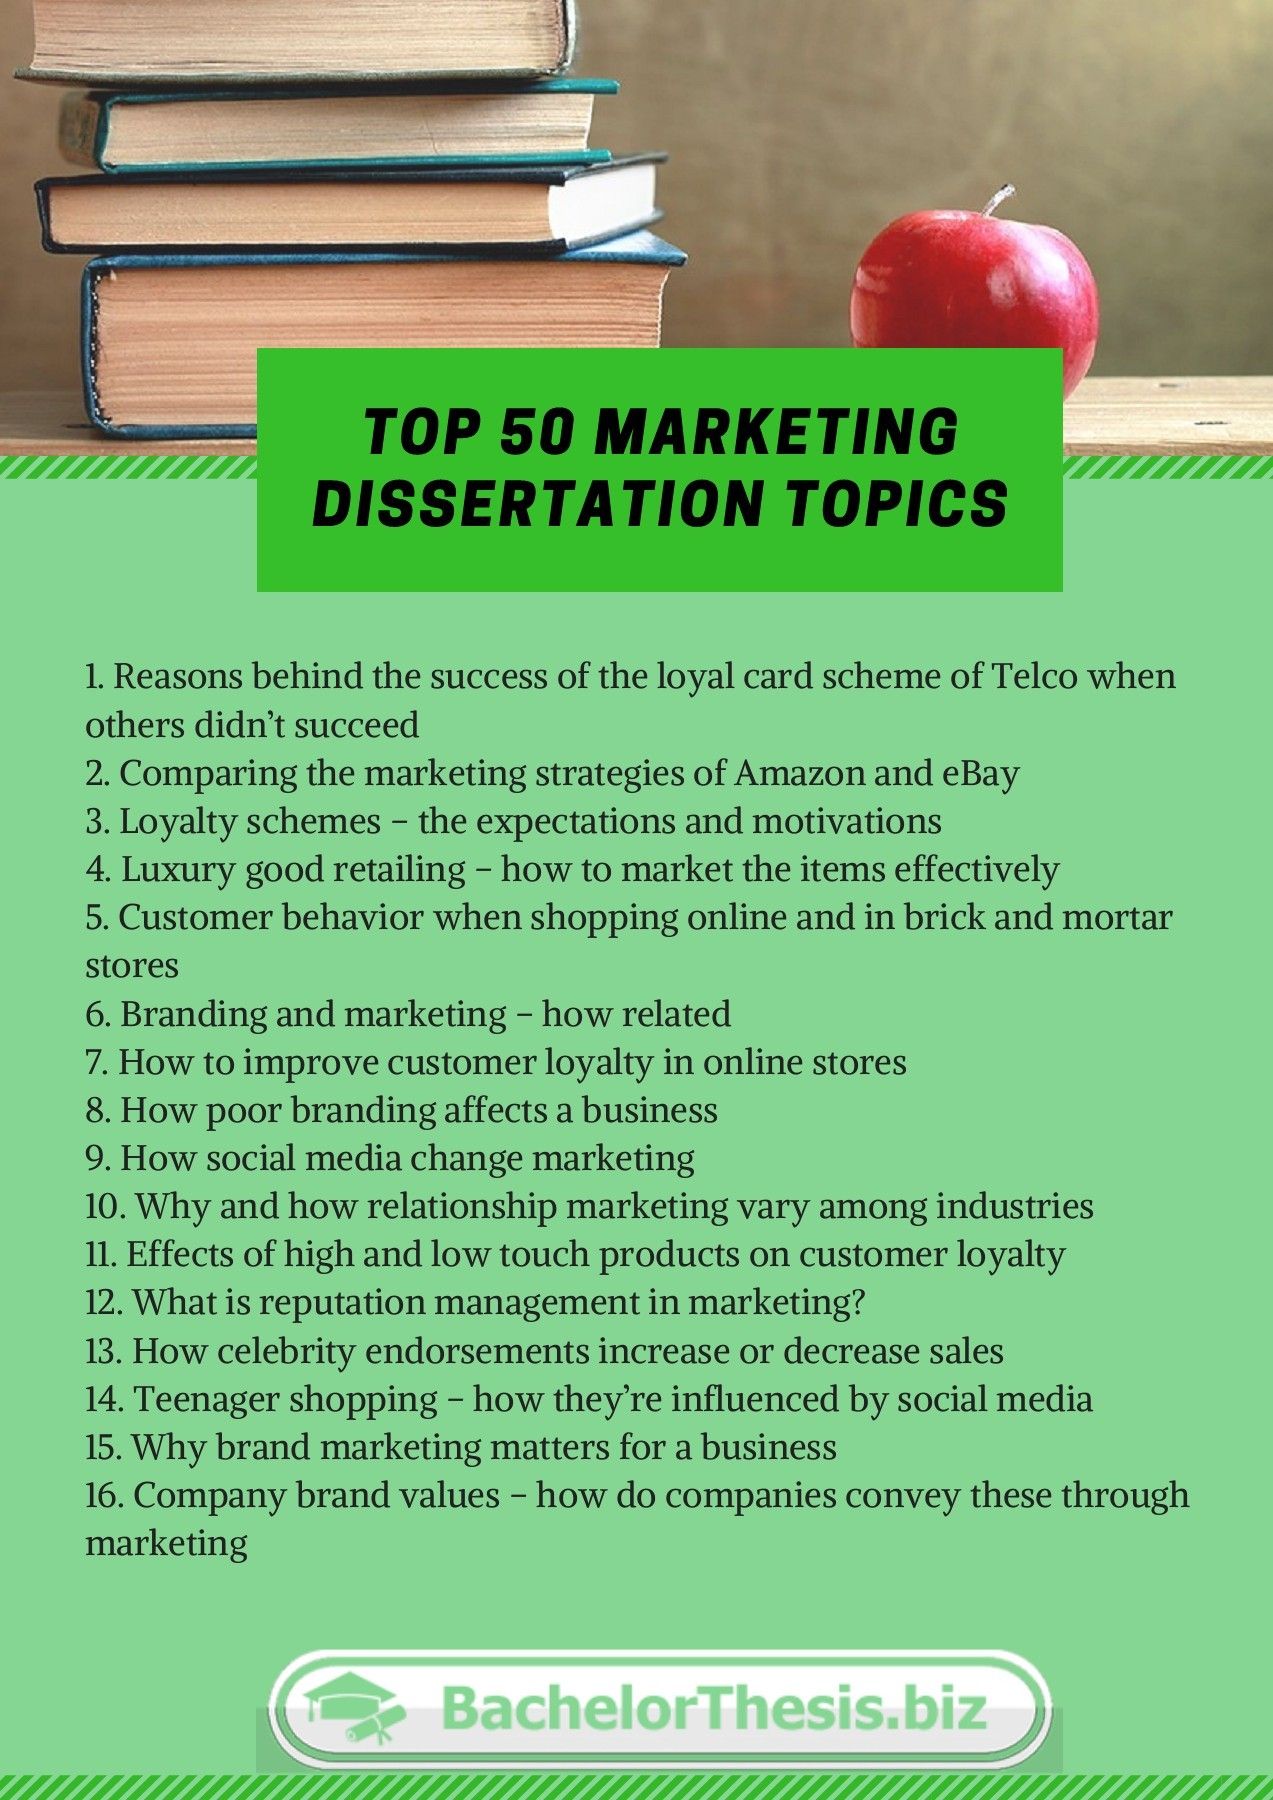 dissertation topics for marketing